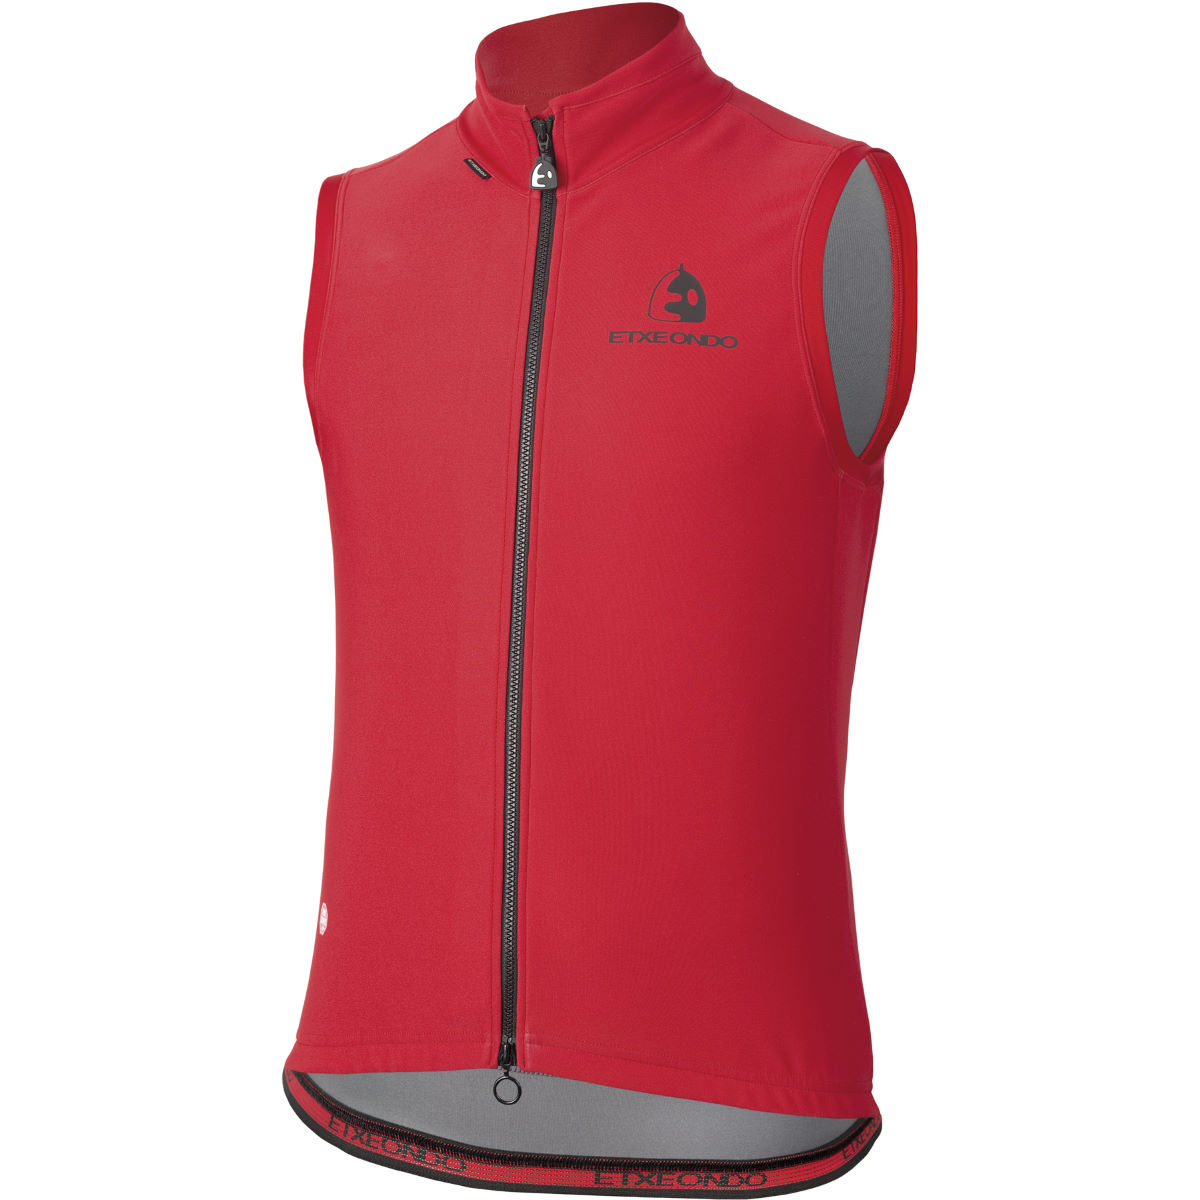 Gilet sans manches Etxeondo Team Edition Windstopper - S Rouge Gilets vélo